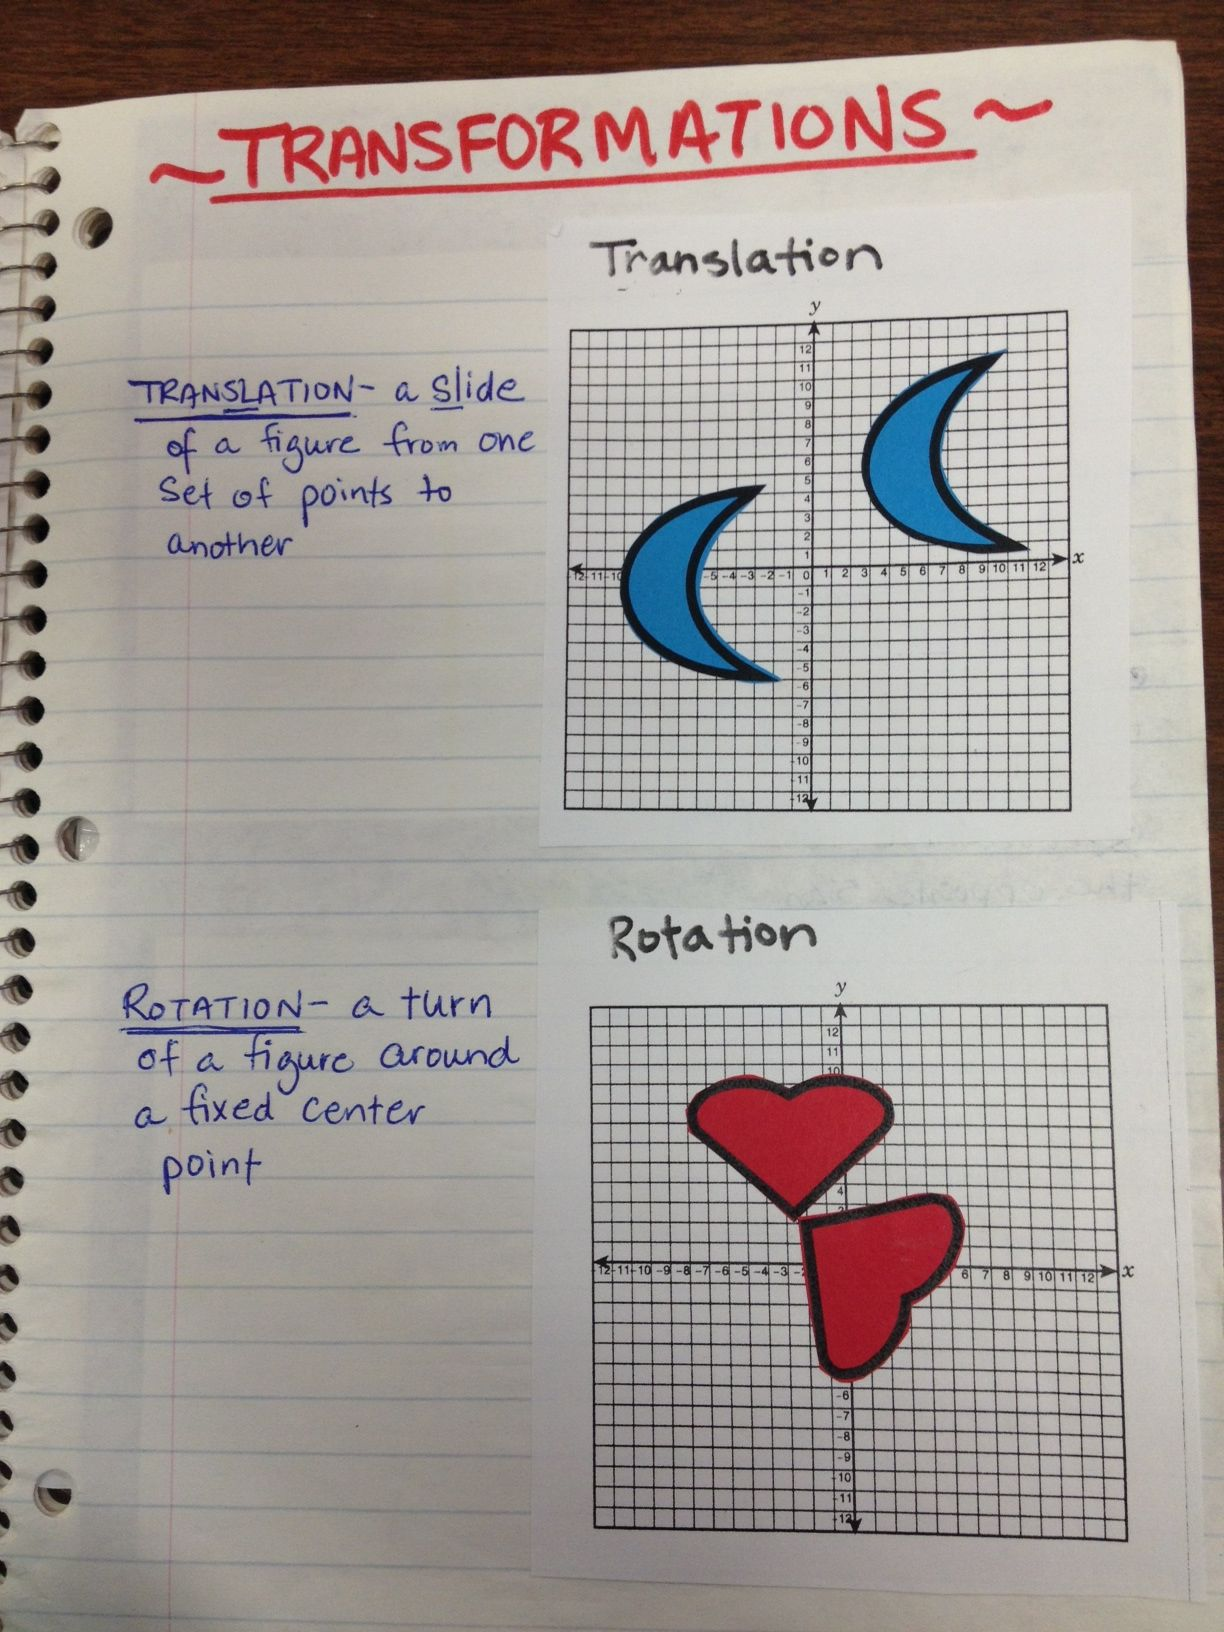 1 Of 2 Transformations Pages For Interactive Notebook Kids Cut Out The Shapes And Glue Them